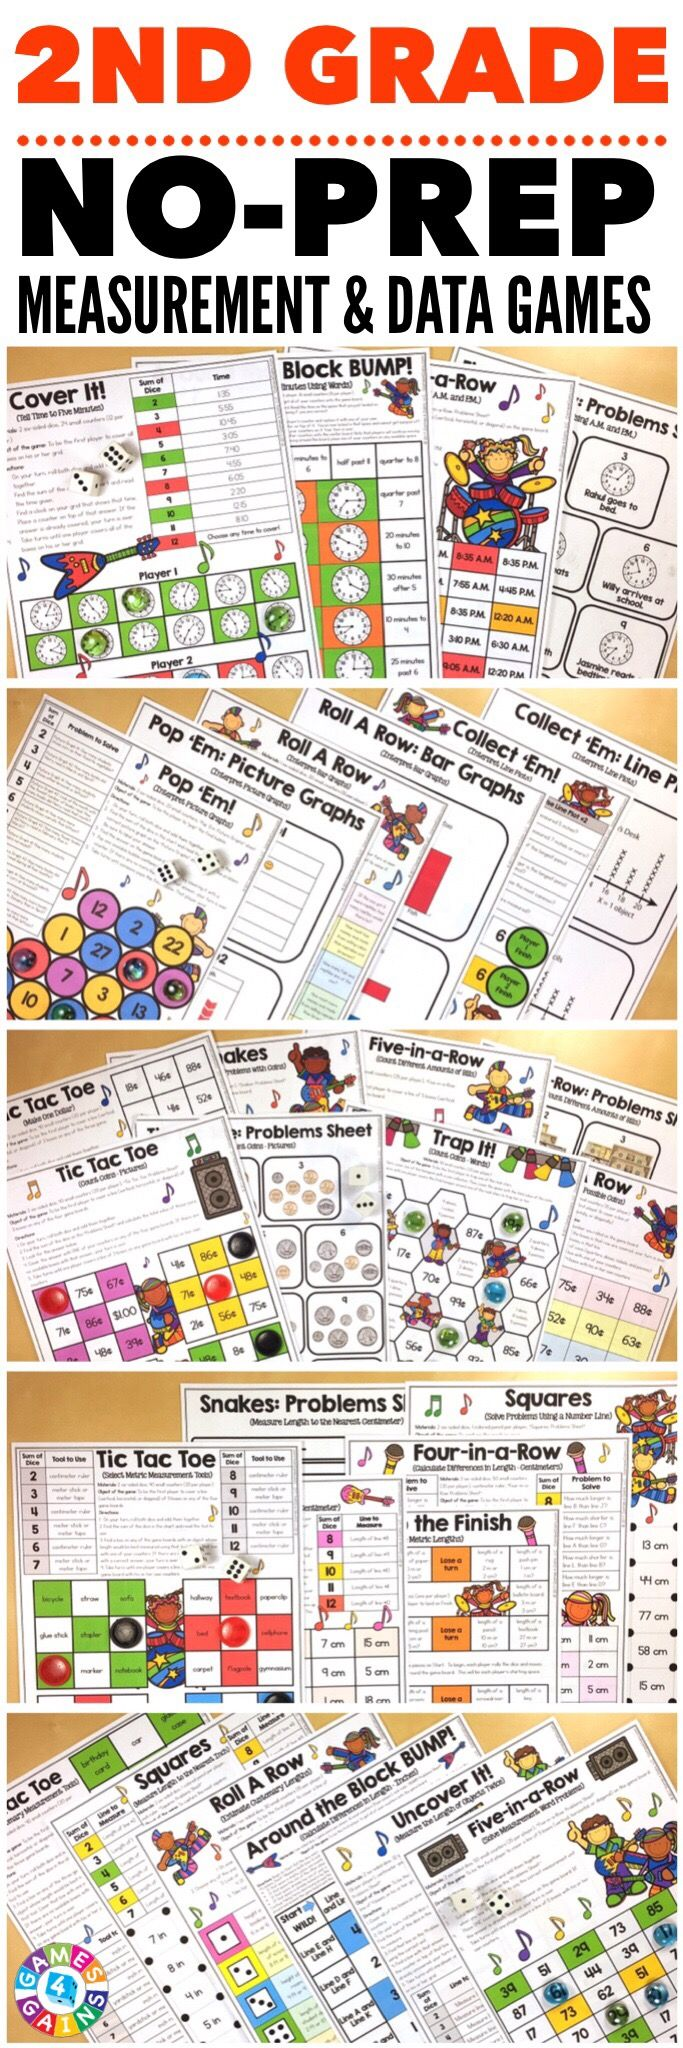 Reading Comprehension Worksheets Multiple Choice  Best Math Teaching Images On Pinterest  Math Activities  Radius And Diameter Worksheet Excel with Slope Graph Worksheet Pdf Nd Grade Math Centers Nd Grade Measurement And Data Games Md   Md Kinder Alphabet Worksheets Pdf